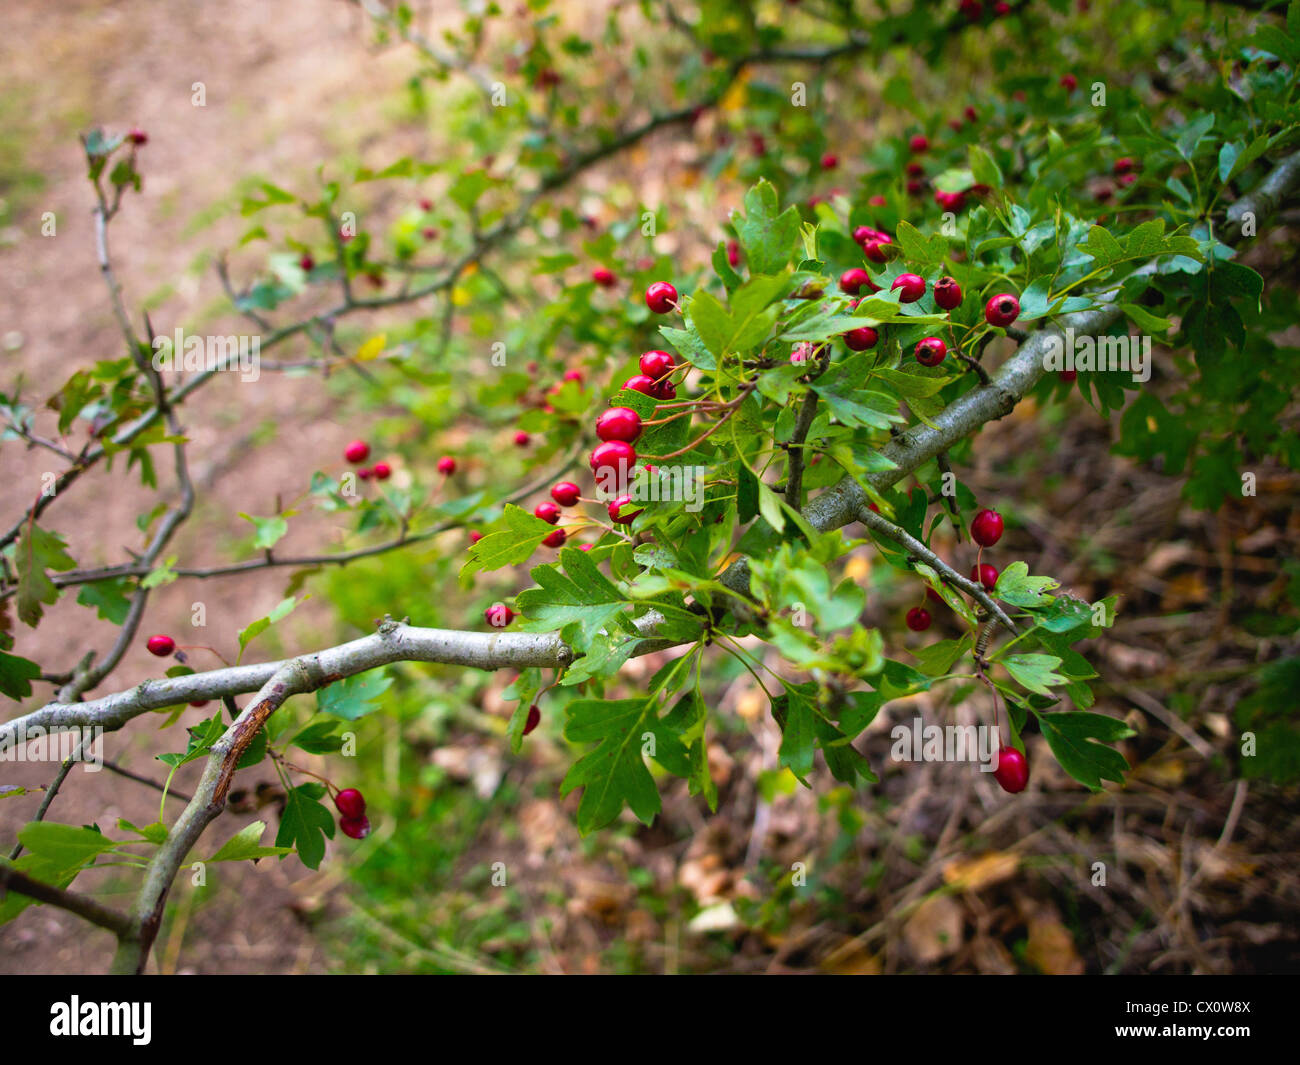 shrubbery, berries - Stock Image